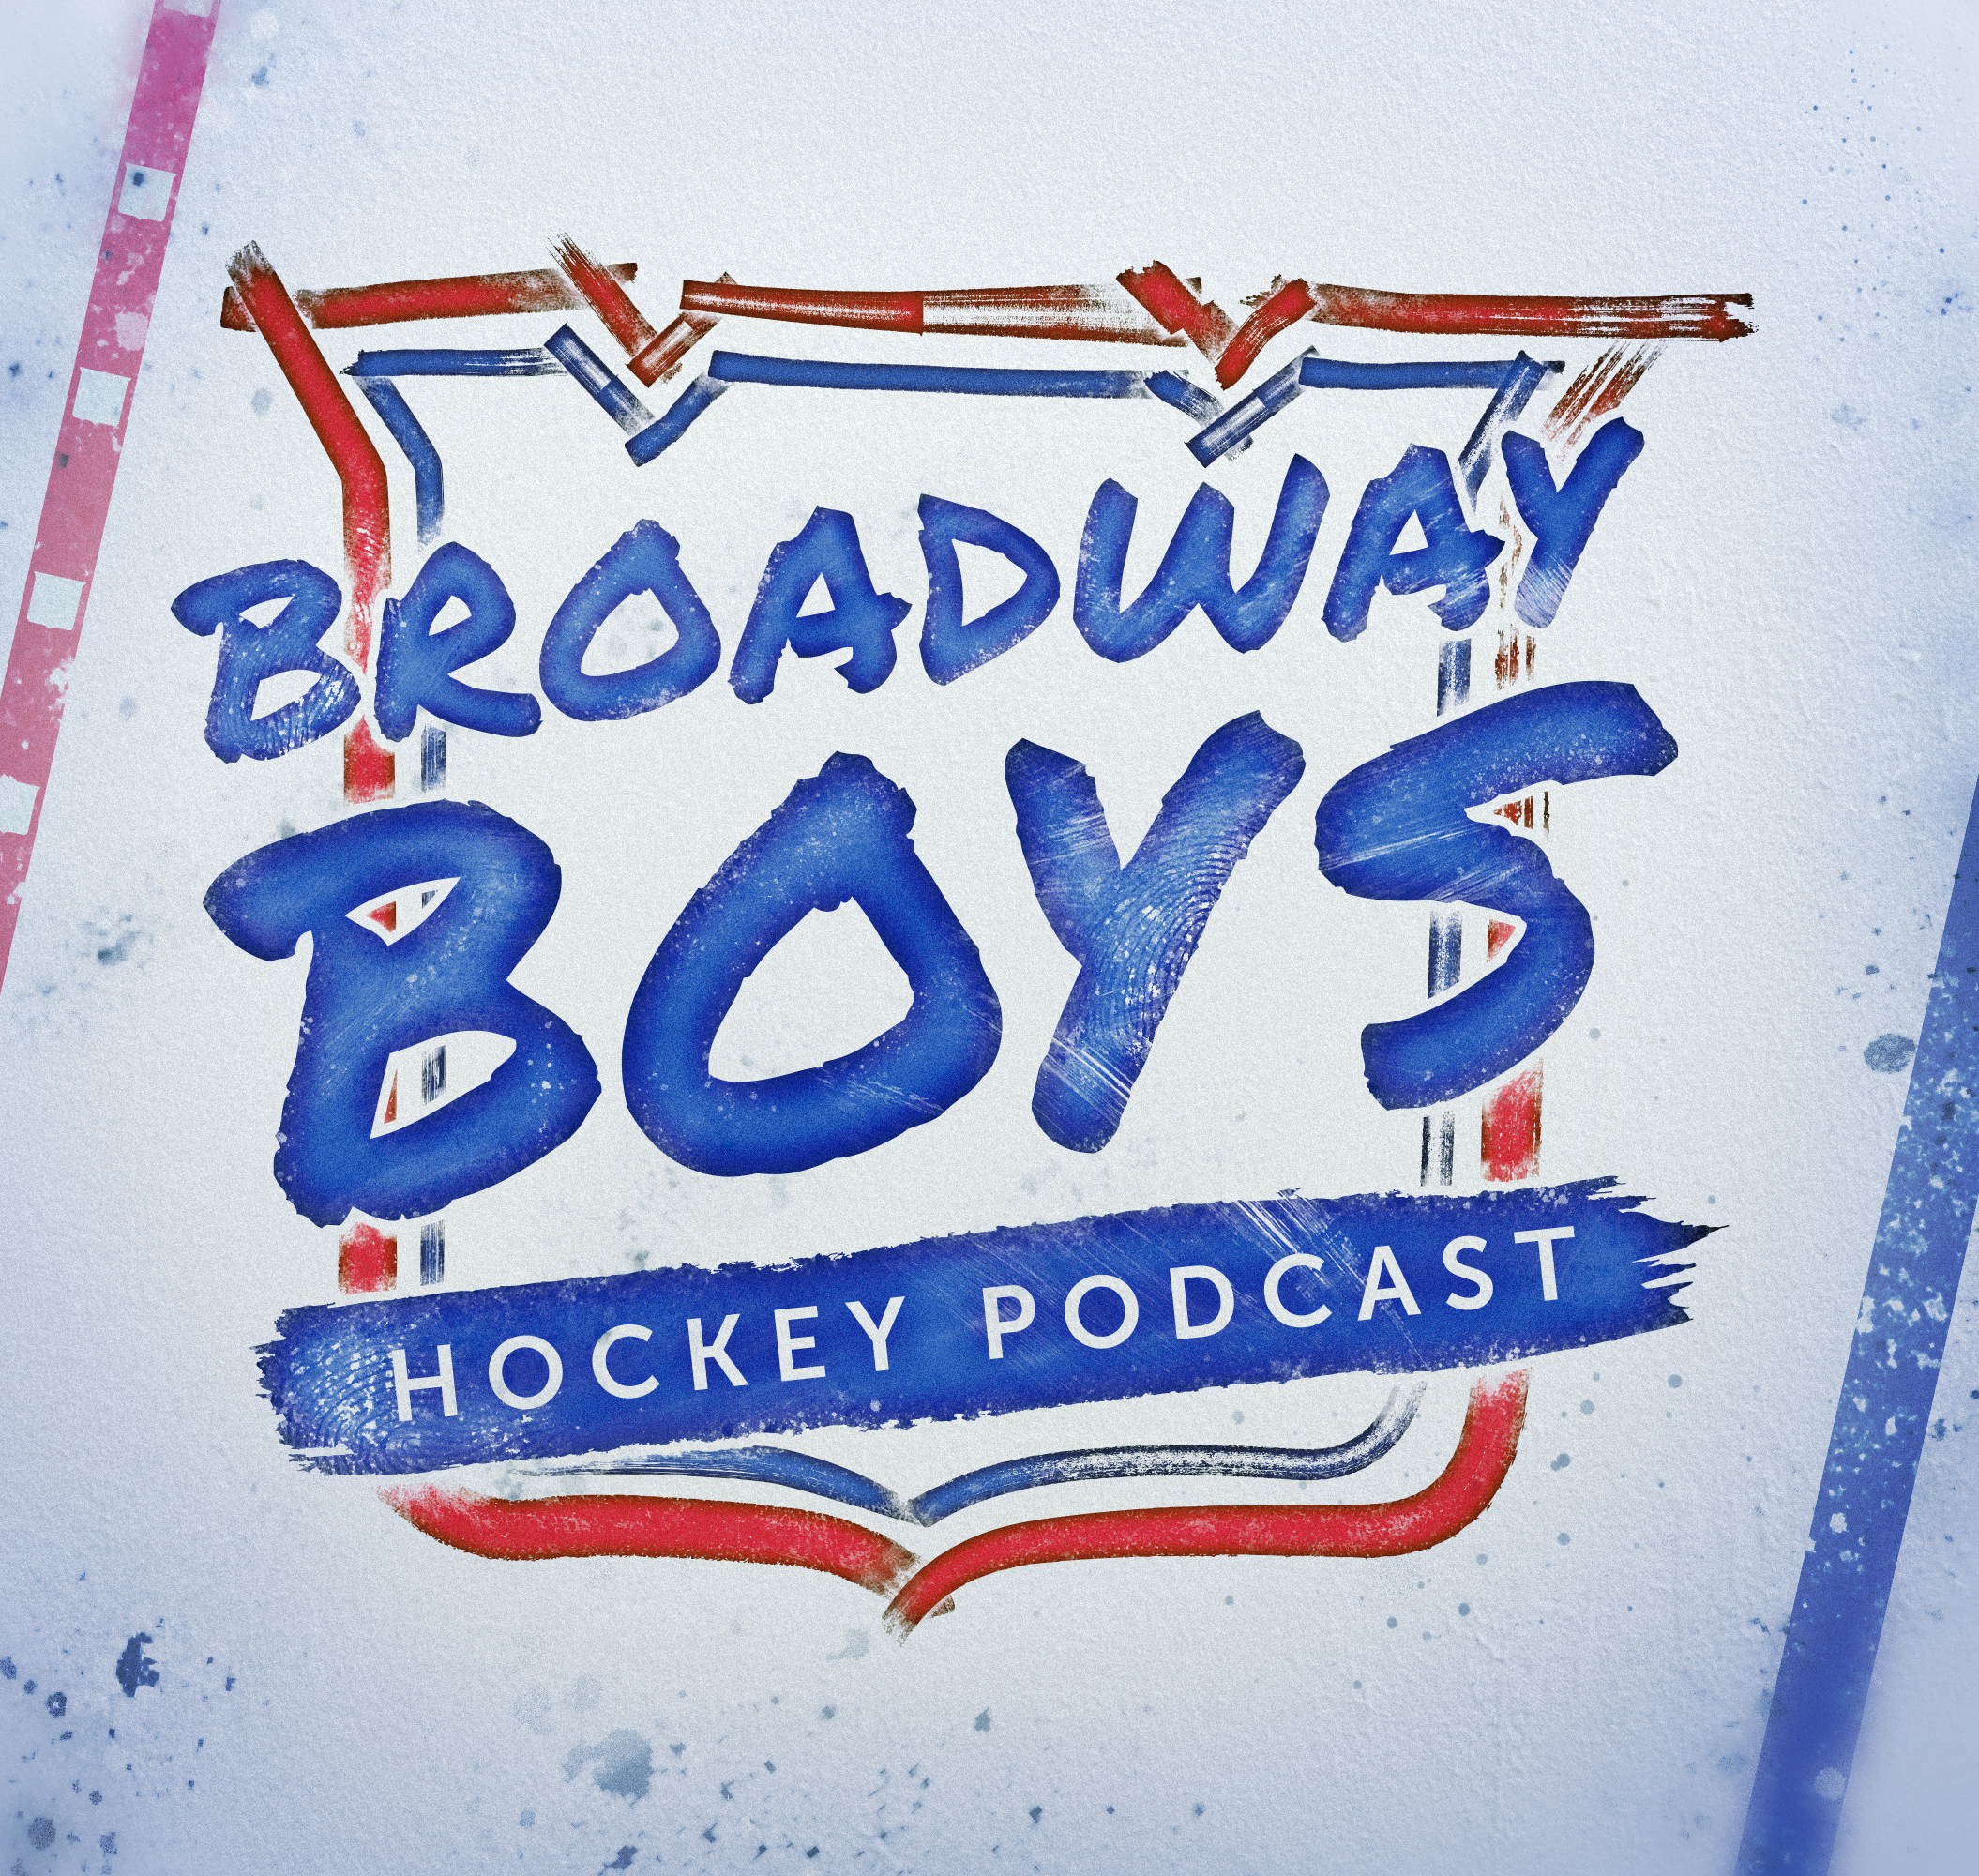 New York Rangers - Broadway Boys Hockey Podcast - EP63 - S1